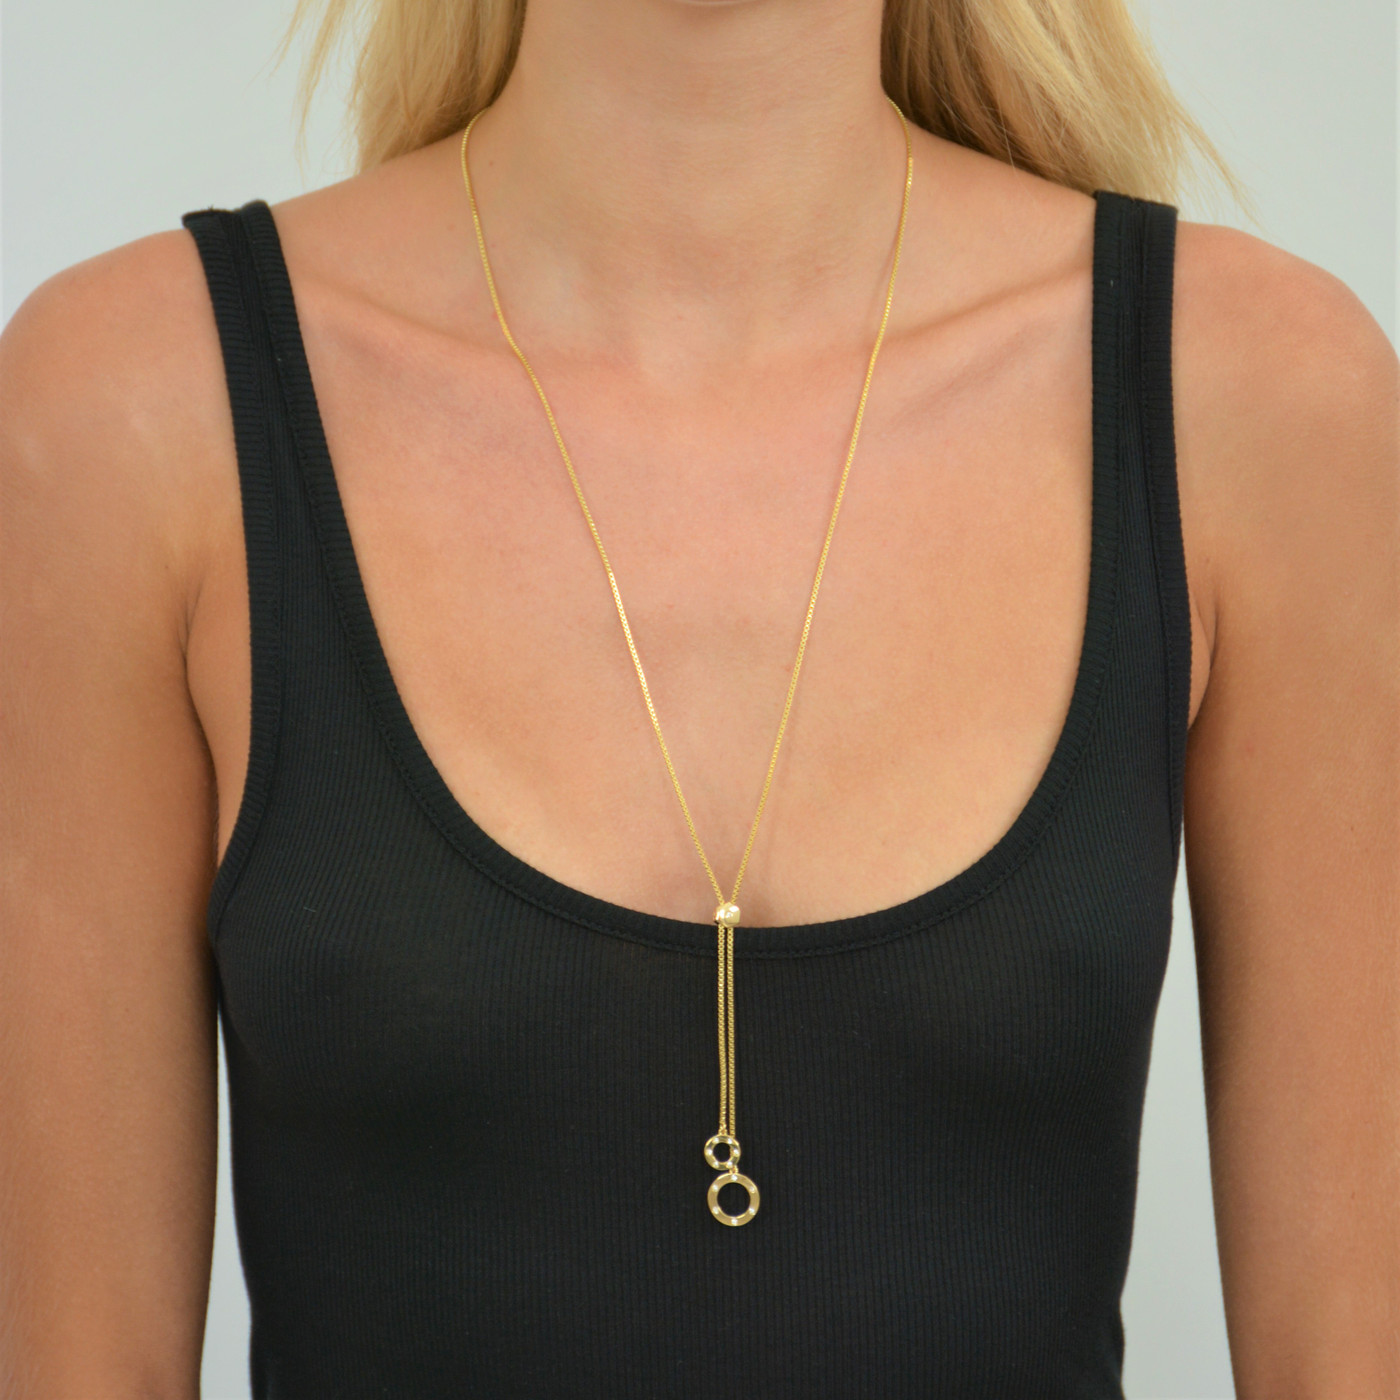 Orbit Lariat Necklace